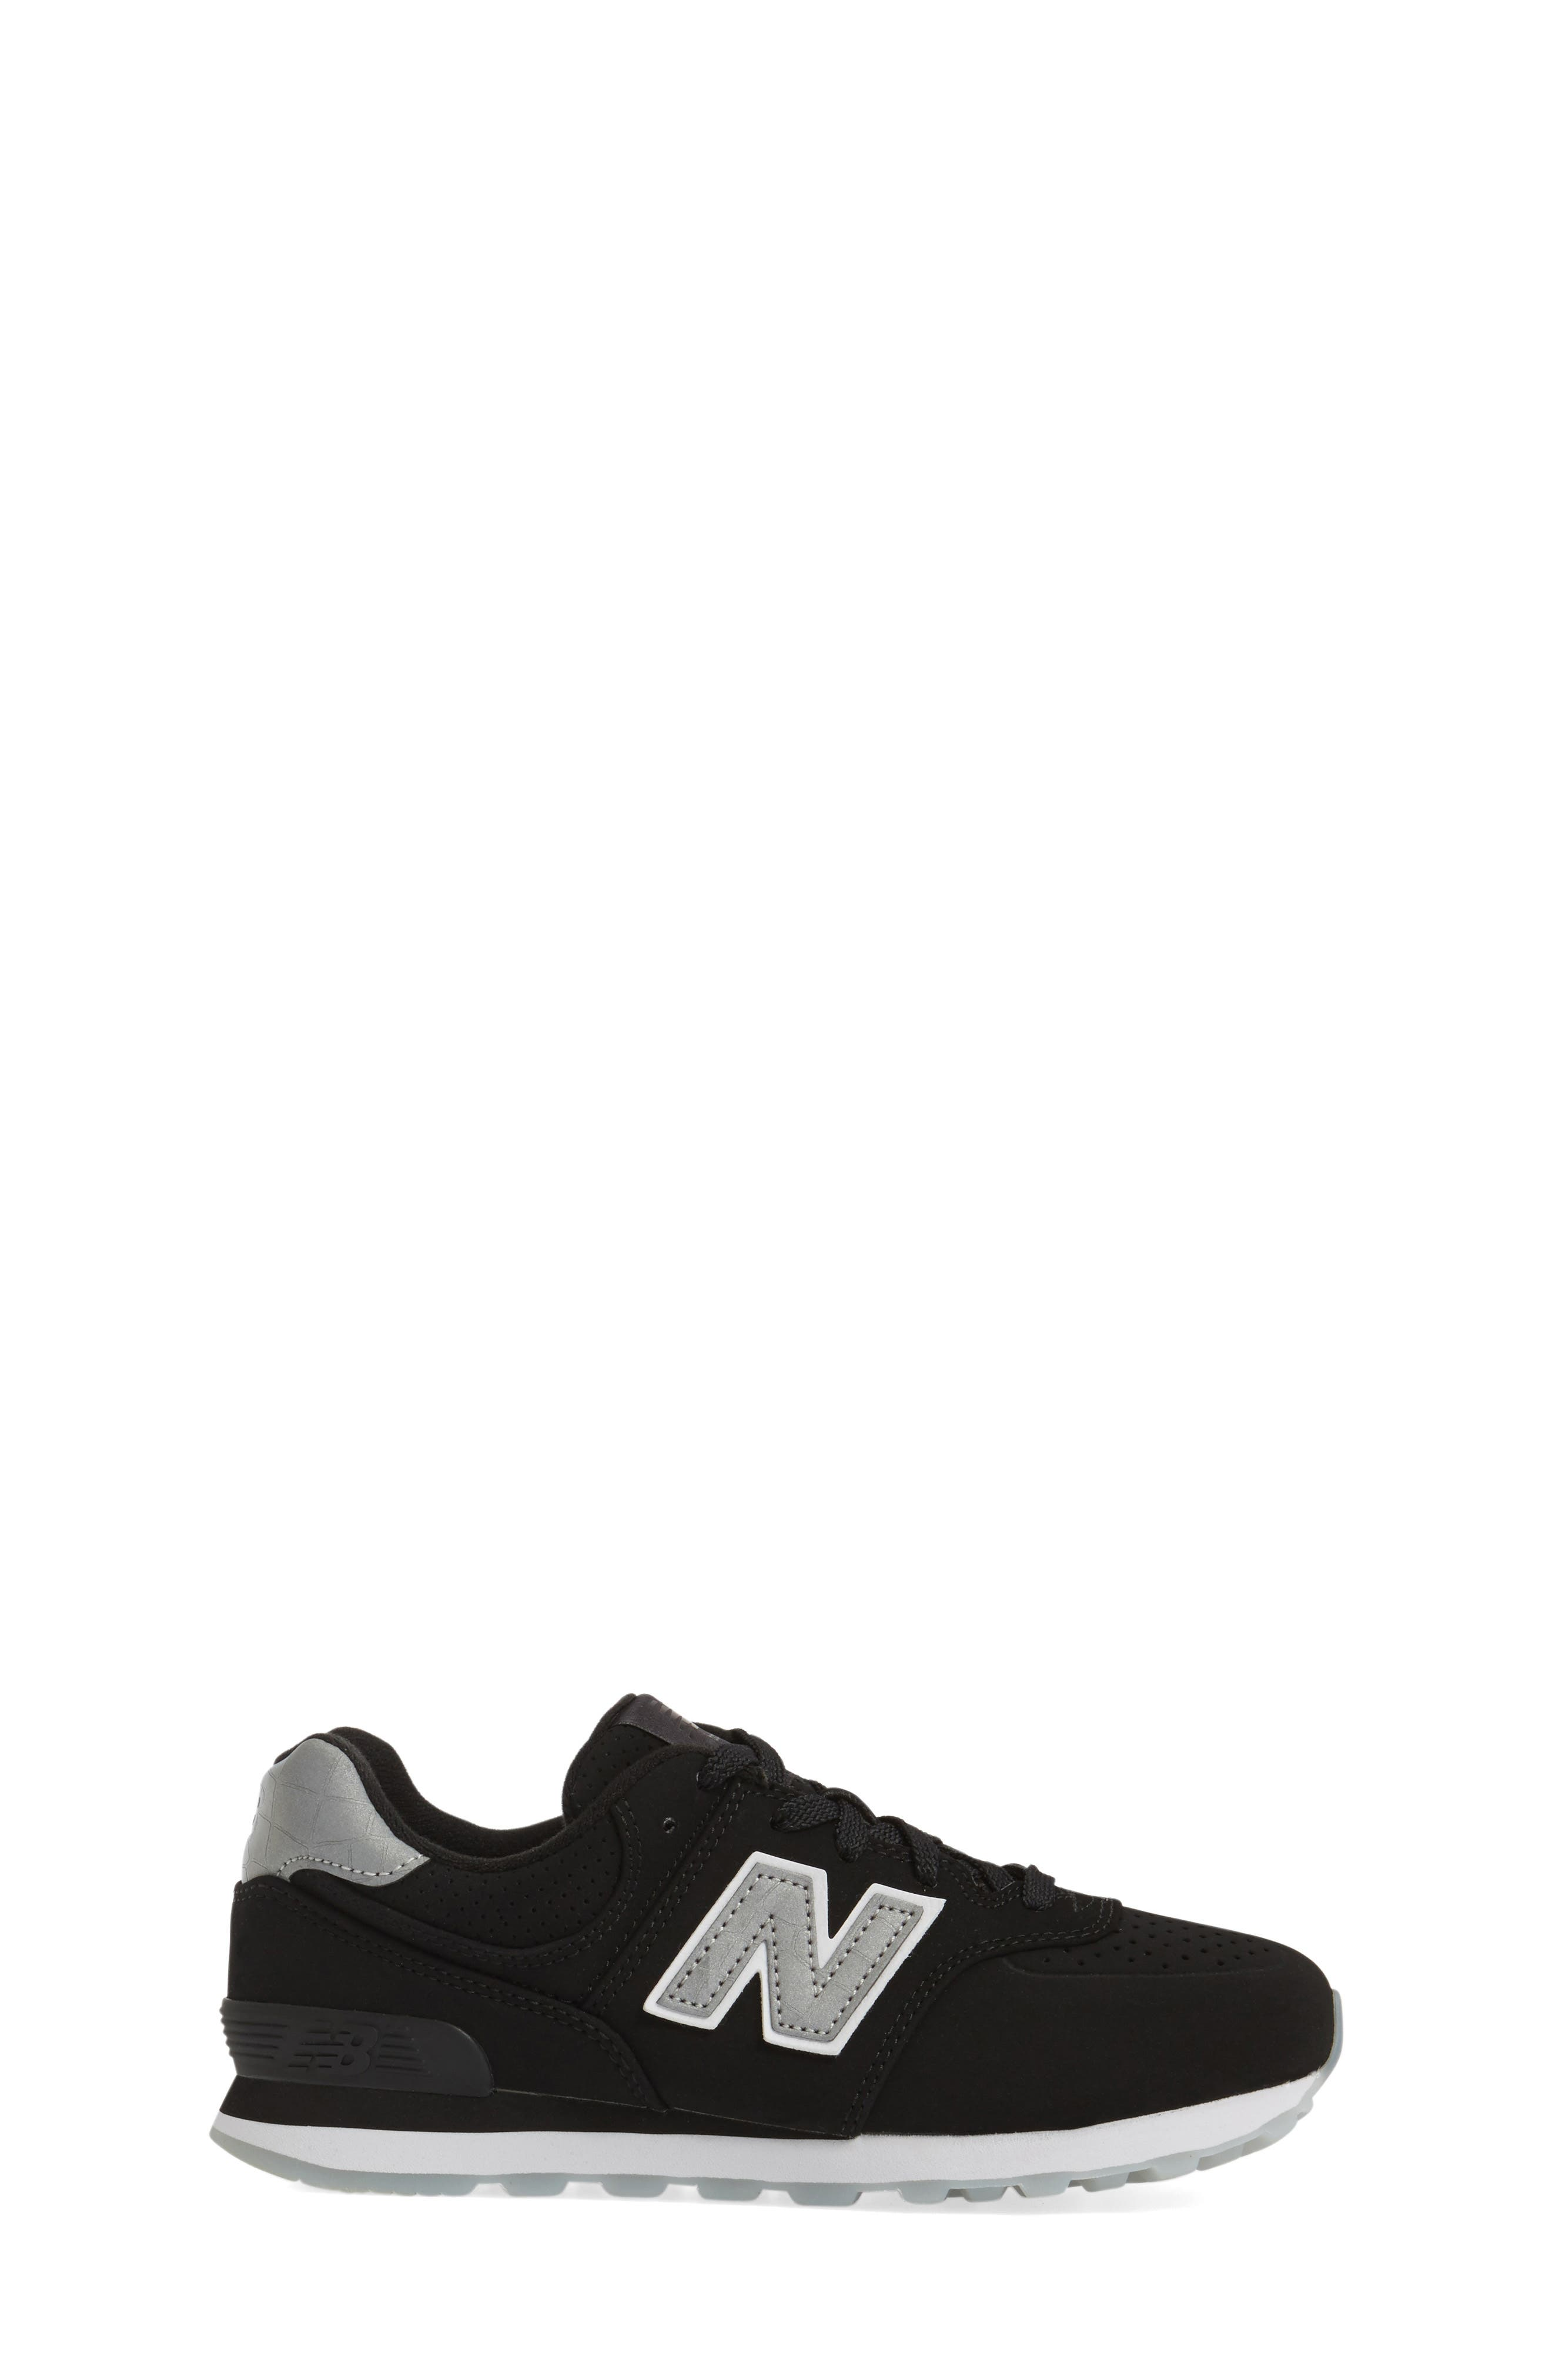 Alternate Image 3  - New Balance 574 Core Plus Sneaker (Baby, Walker, Toddler, Little Kid, Big Kid)